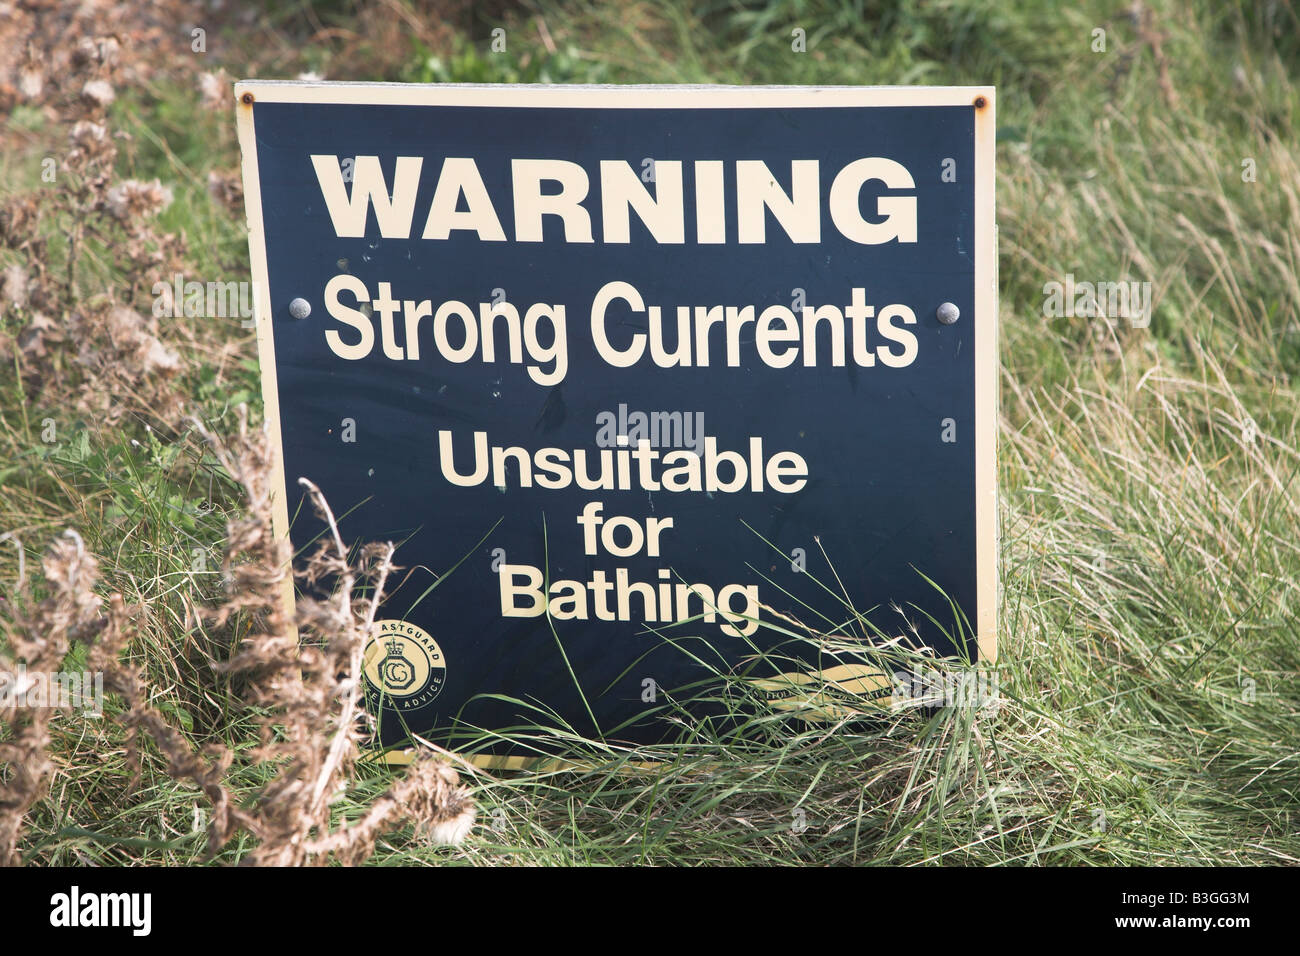 Warning strong currents unsuitable for swimming - Stock Image